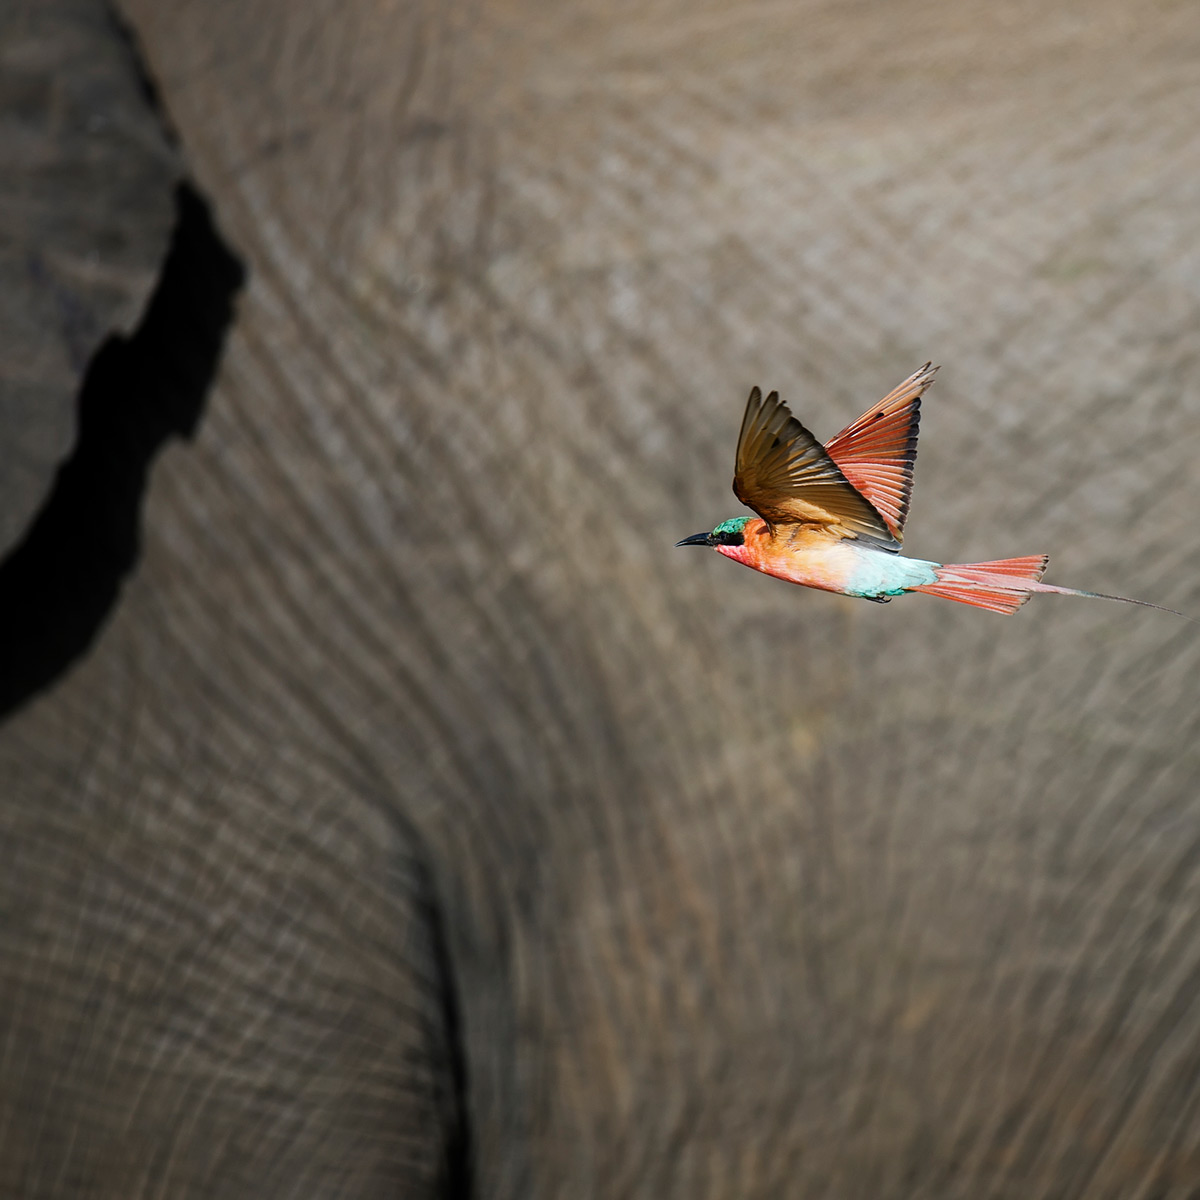 A carmine bee-eater flies around an elephant in Kruger National Park, South Africa © Licinia Machado